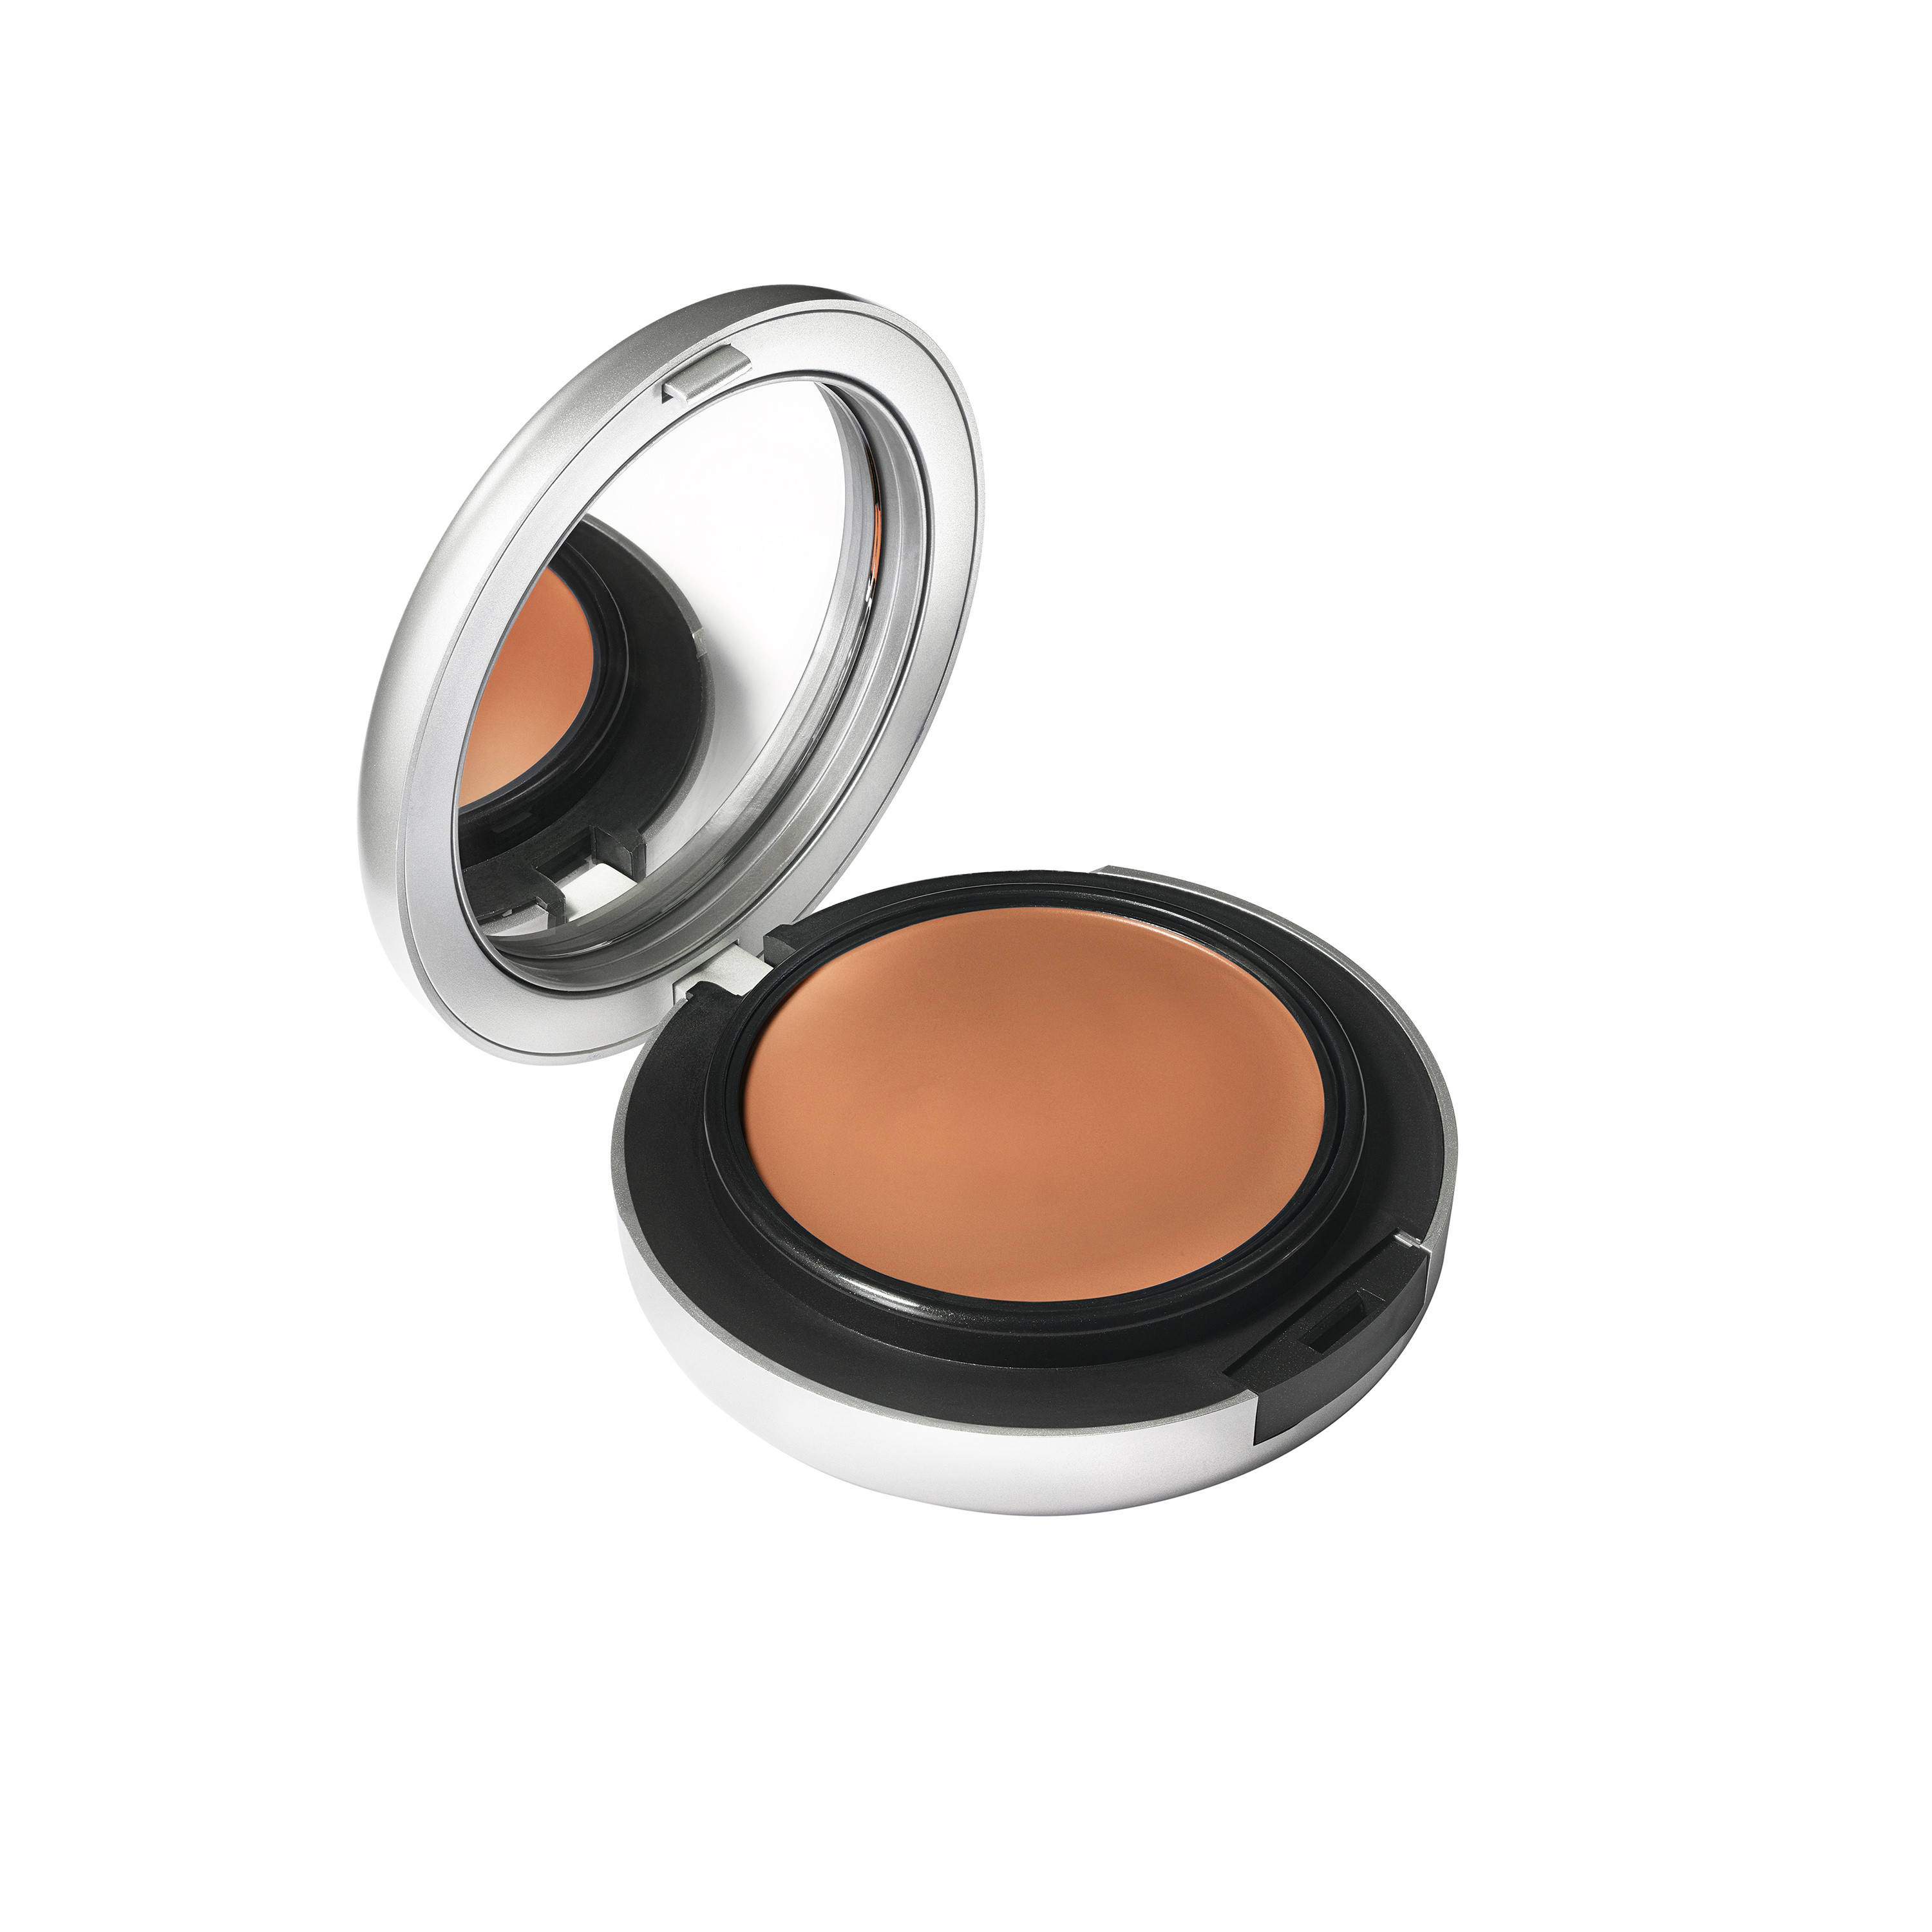 Studio Fix Tech Cream-To-Powder Fdt - NW30, NW30, large image number 1